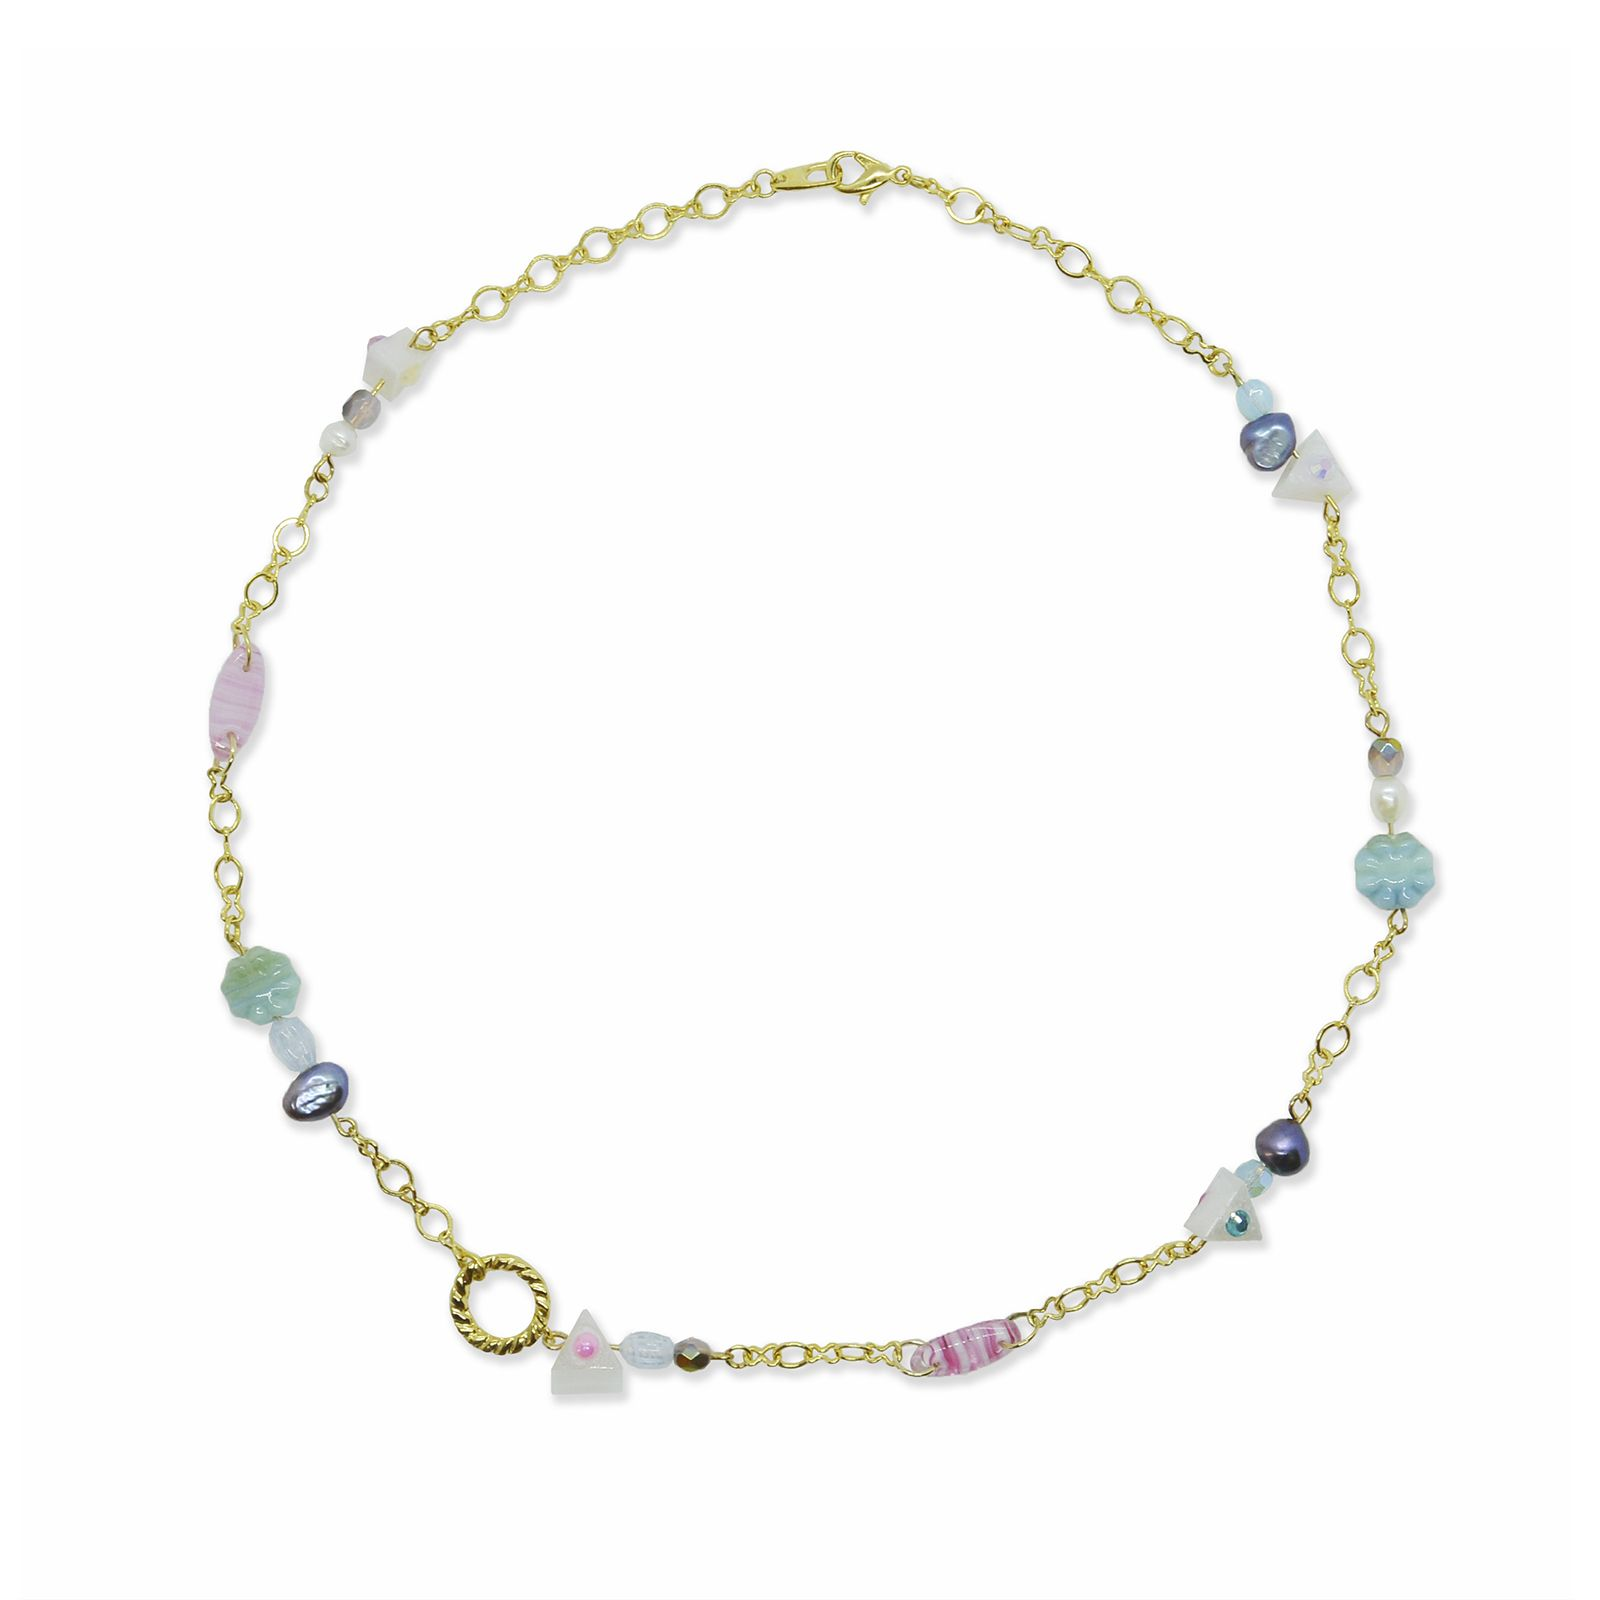 Chain blooming necklace